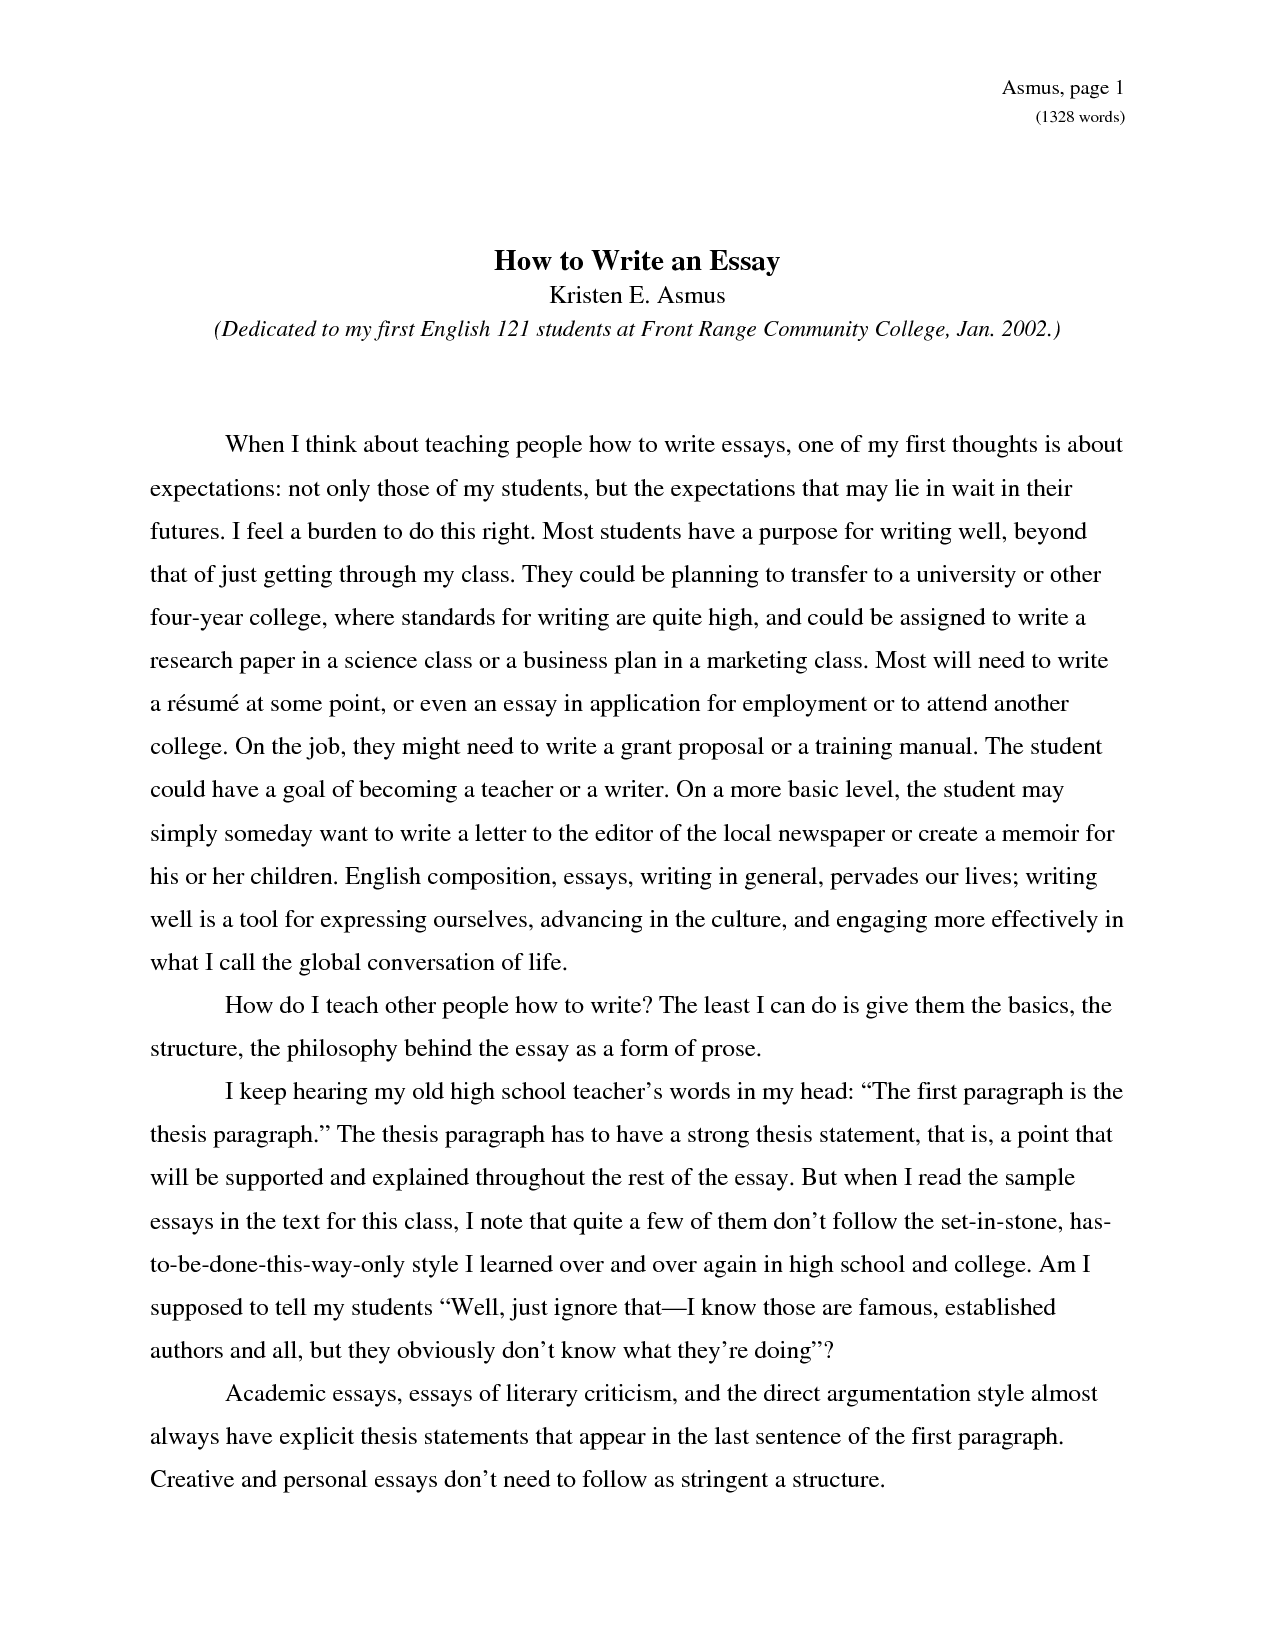 007 Easy Way To Write An Essay Example The Correct Composition Classroom How Correctly Time In Obfuscata L Paper Movie Title English Numbers Structure Excellent Argumentative Analytical Ielts Task 2 Full